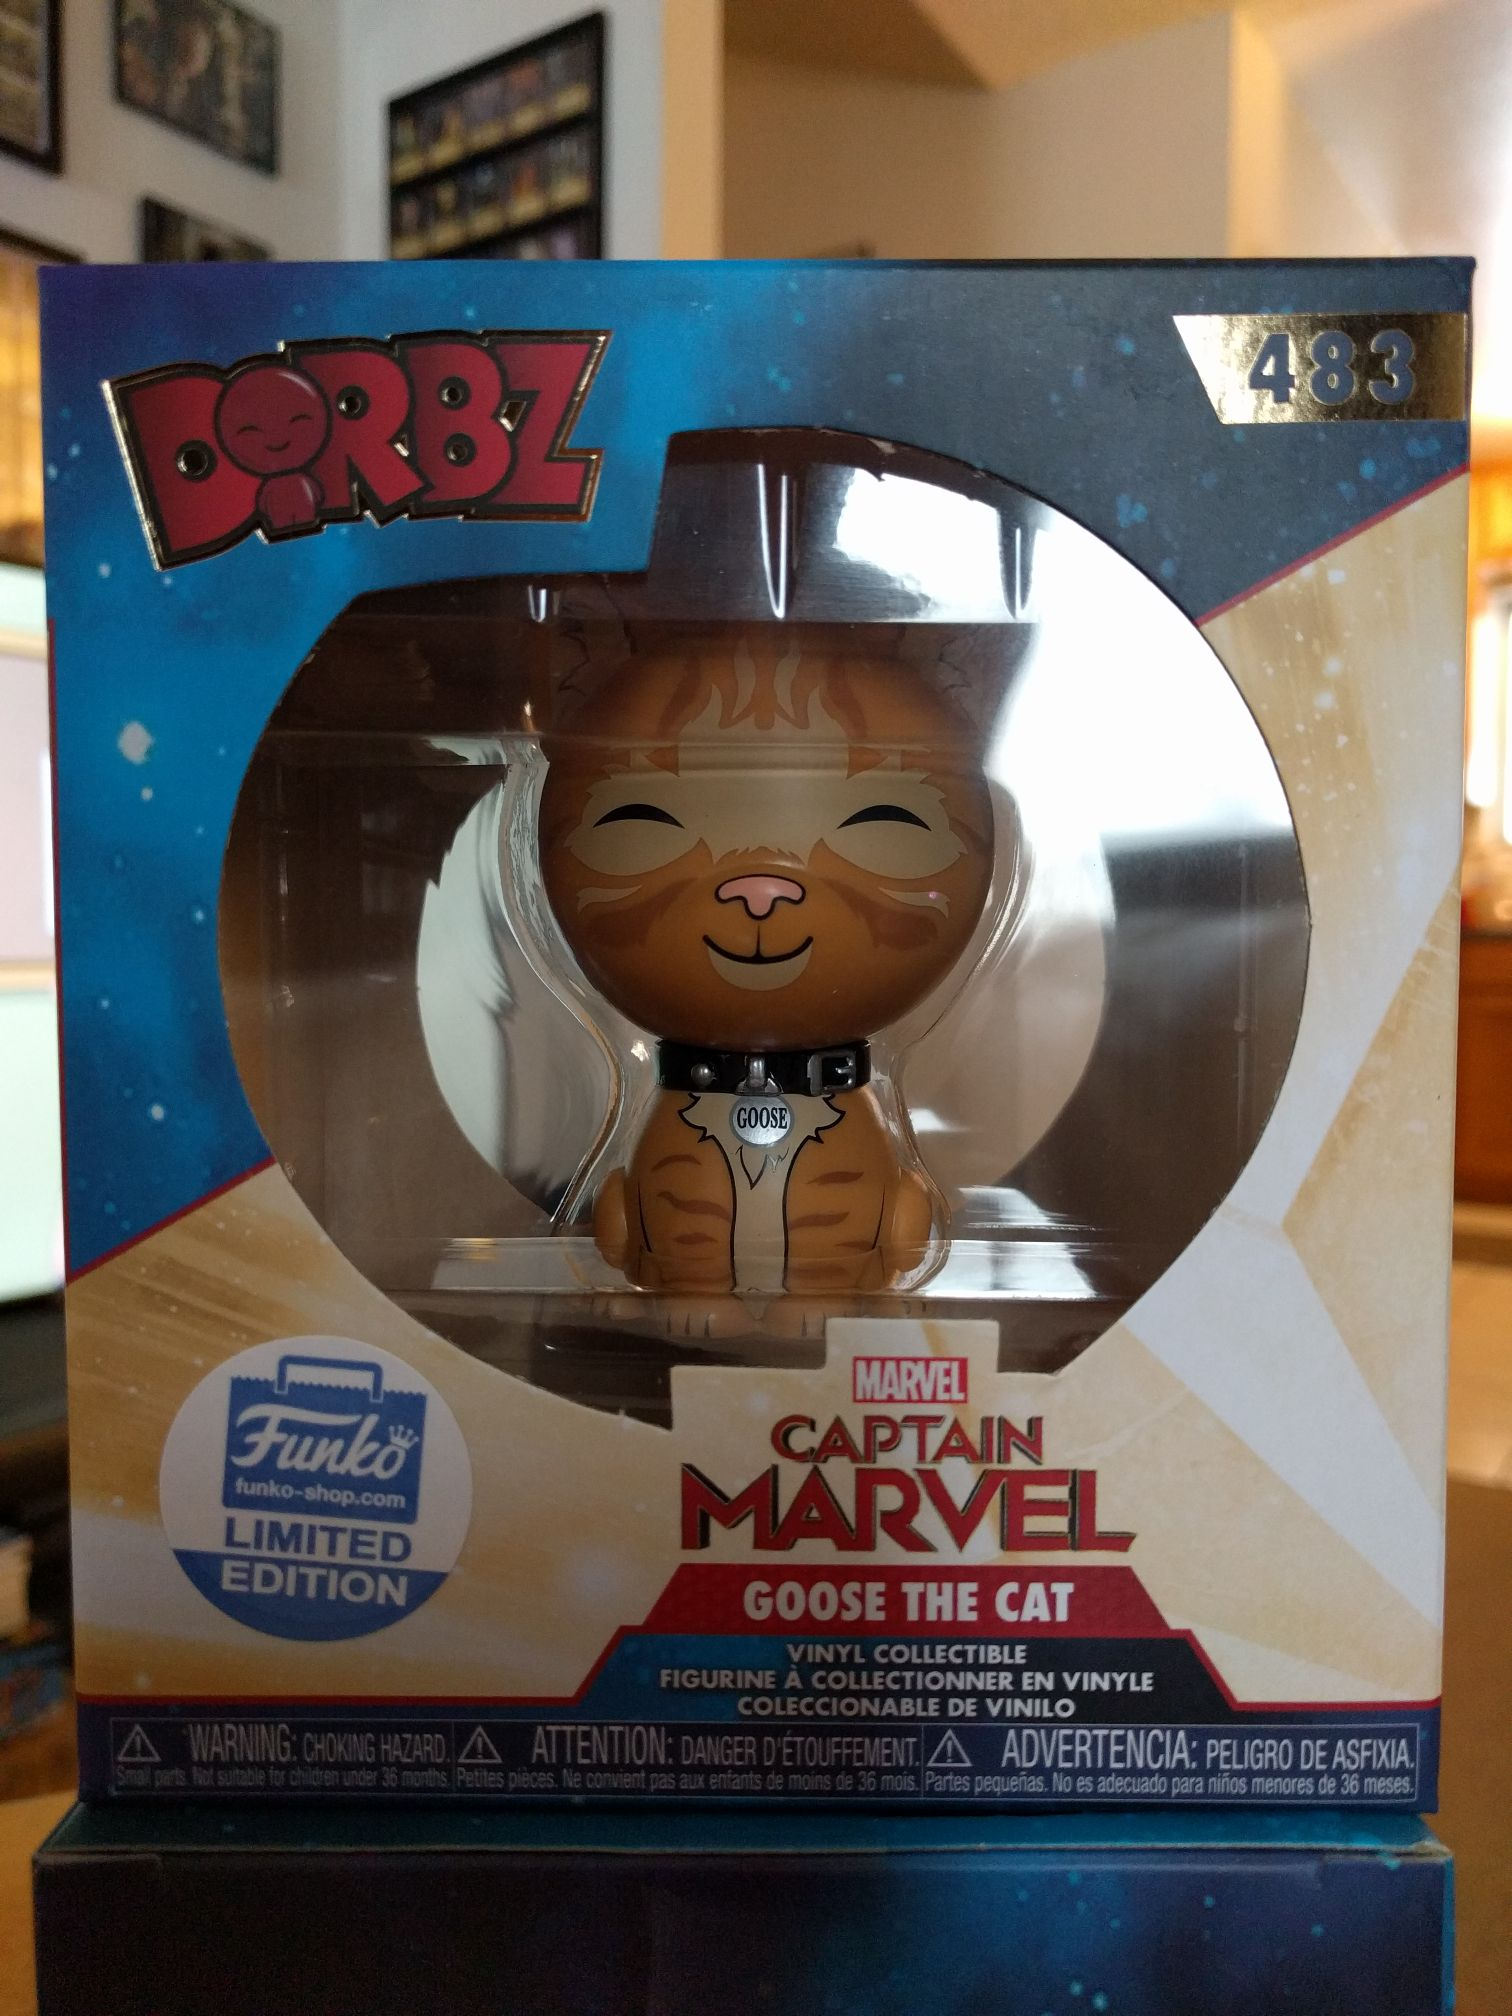 Goose the Cat Funko - Dorbz (483) front image (front cover)